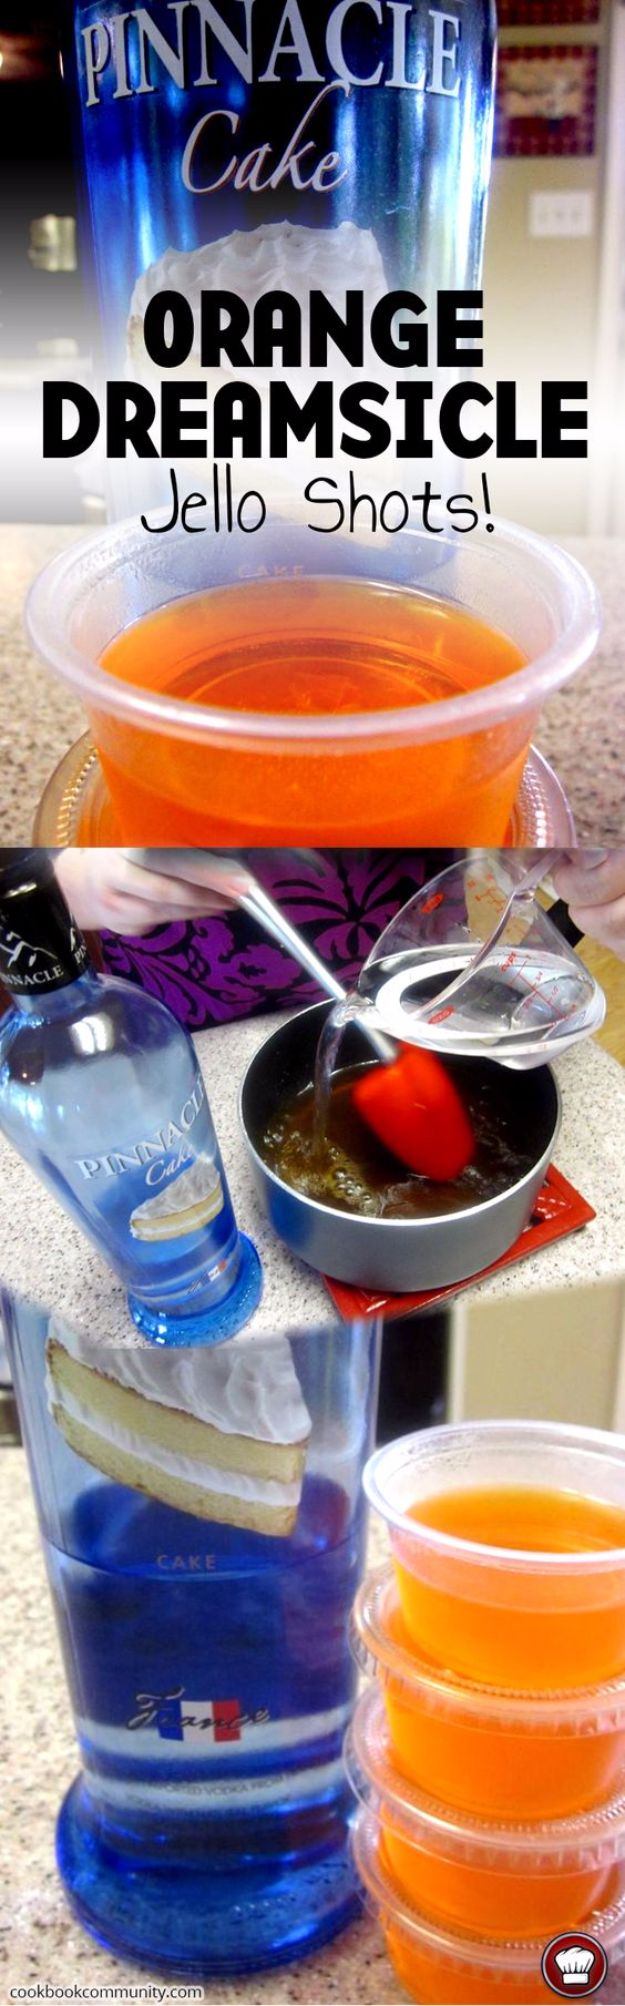 Best Jello Shot Recipes - Orange Dreamsicle Jello Shots - Easy Jello Shots Recipe Ideas with Vodka, Strawberry, Tequila, Rum, Jolly Rancher and Creative Alcohol - Unique and Fun Drinks for Parties like Whiskey Fireball, Fall Halloween Versions, Malibu, 4th of July, Birthday, Summer, Christmas and Birthdays http://diyjoy.com/best-jello-shot-recipes